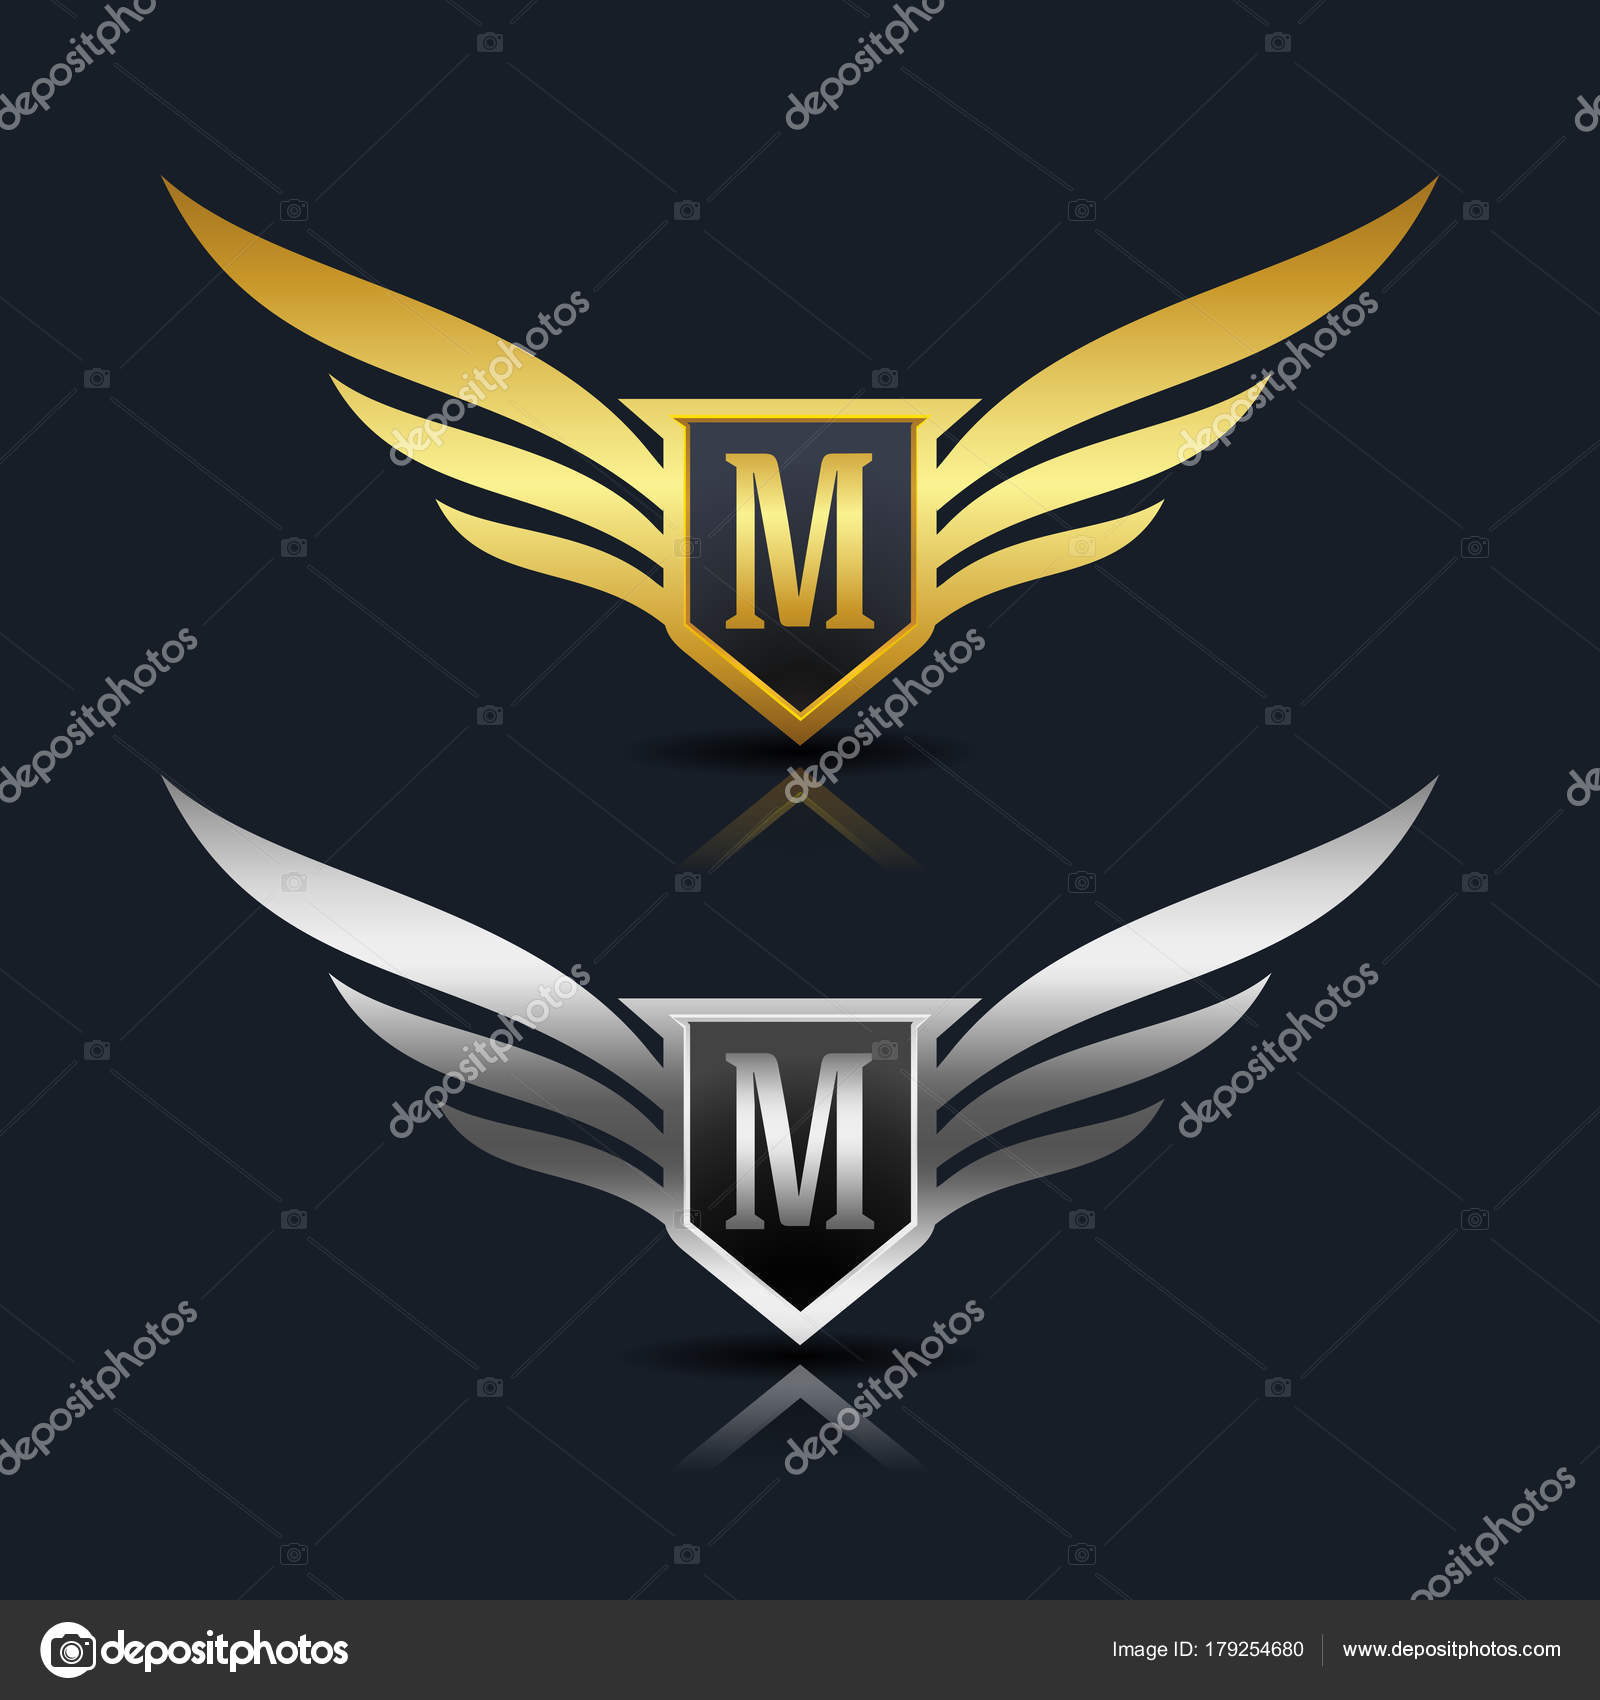 wings shield letter m logo � stock vector 169 oriu007 179254680